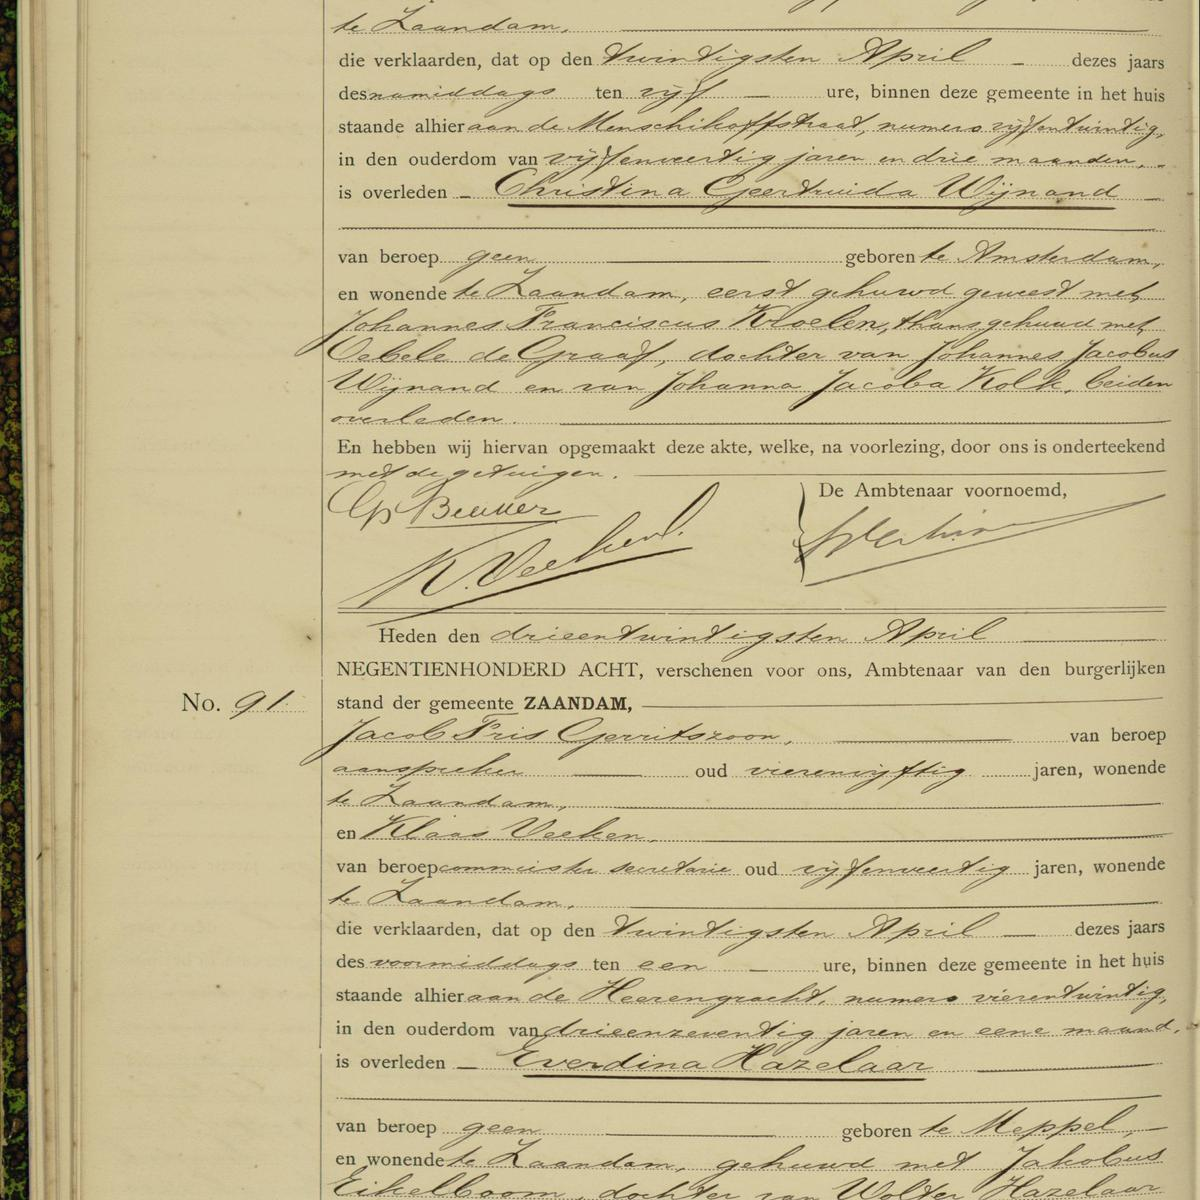 Civil registry of deaths, Zaandam, 1908, records 90-91